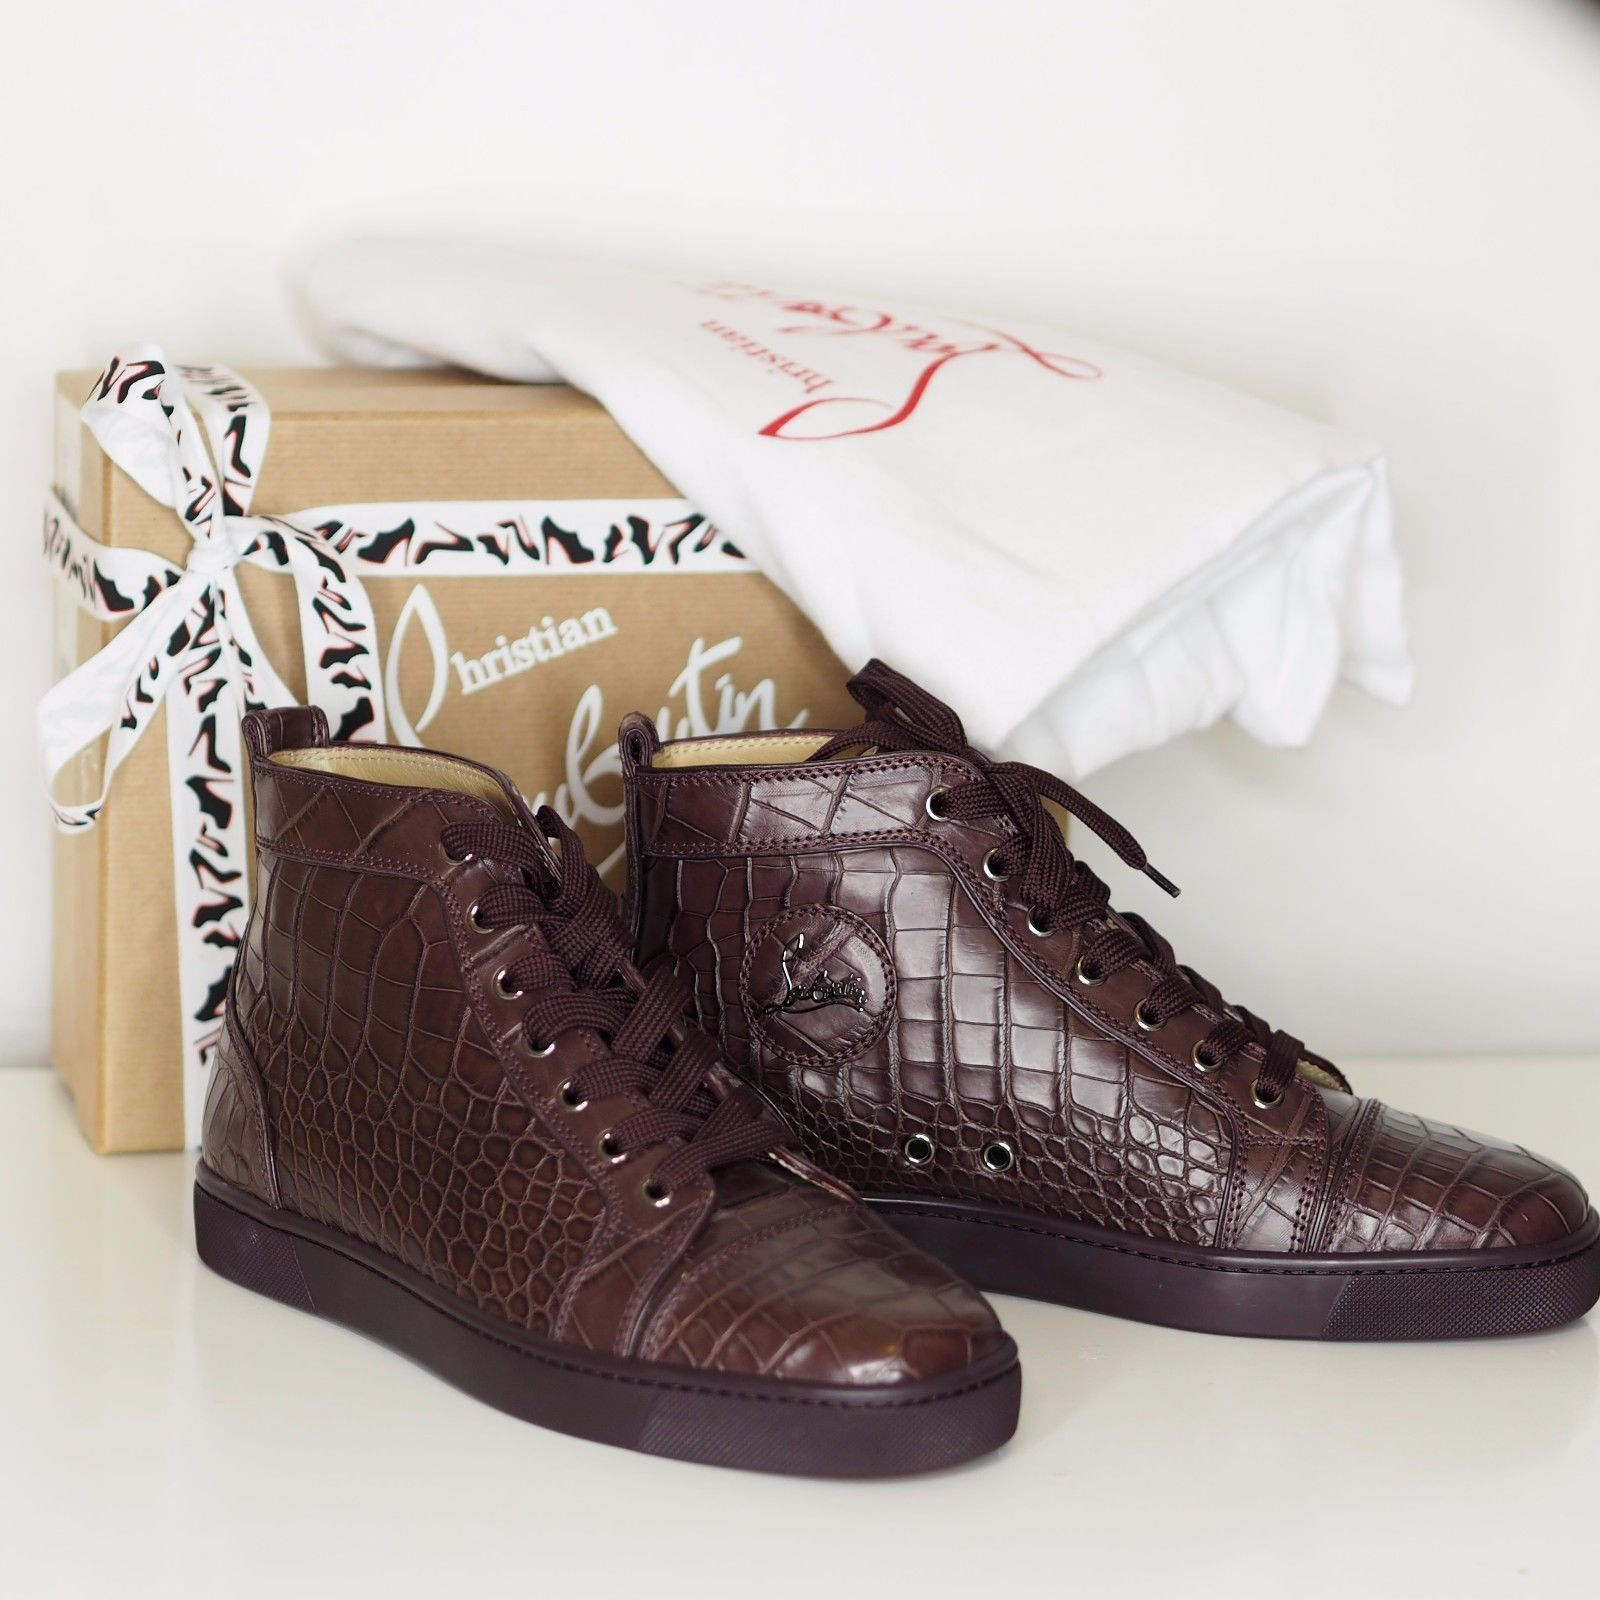 louboutin crocodile sneakers